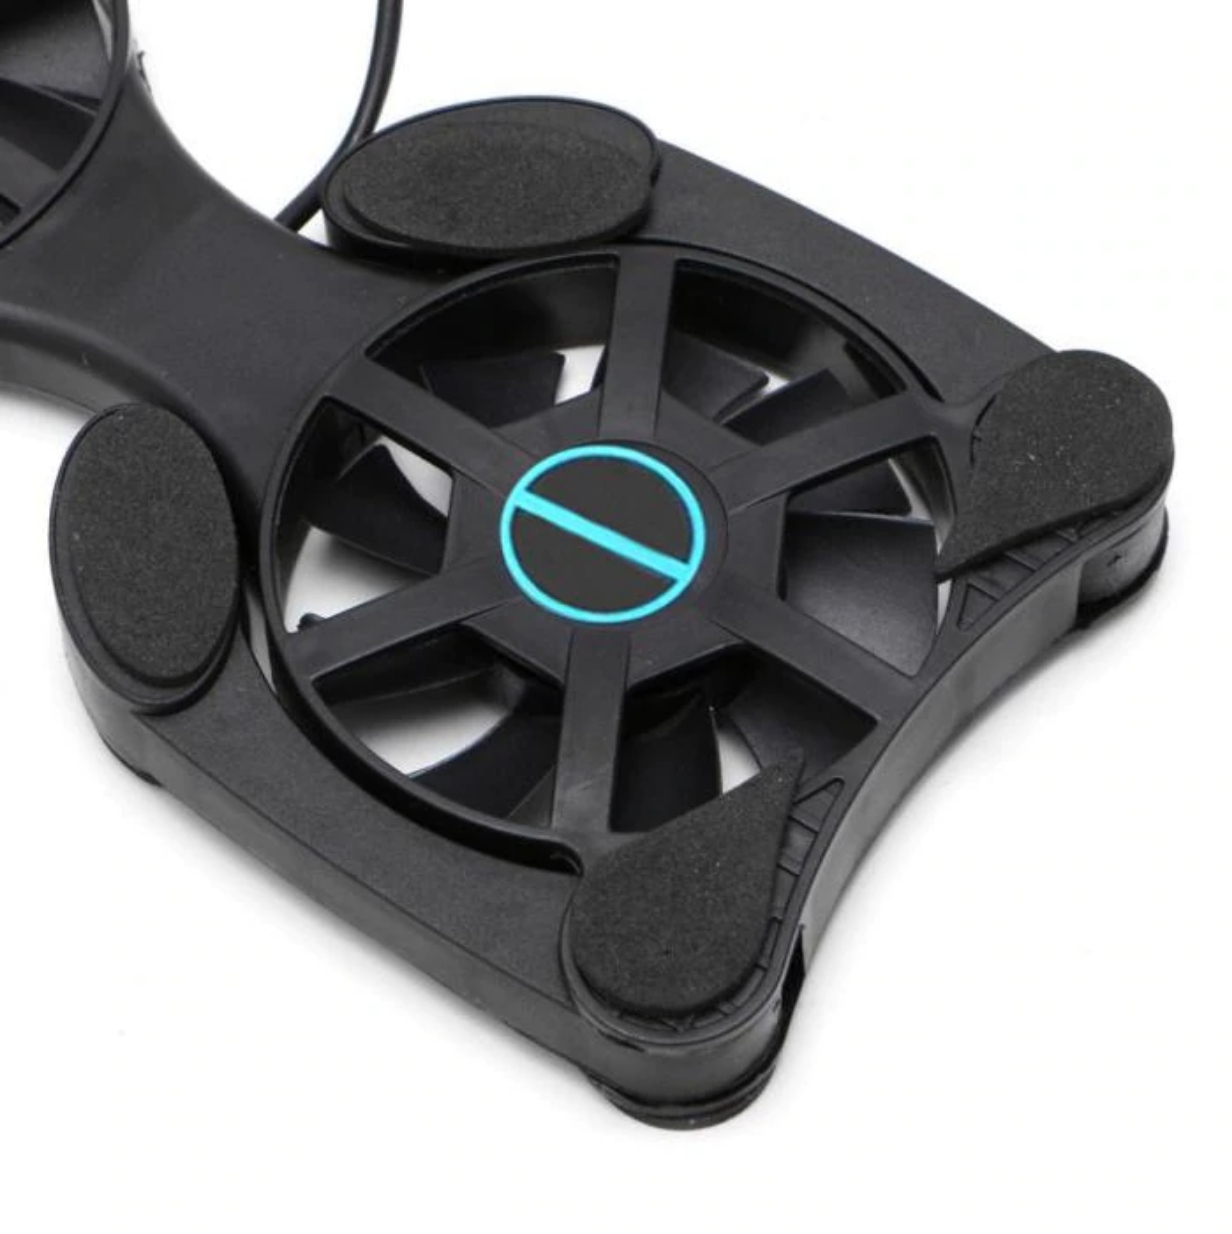 Laptop Cooling Fans Pad - Shopptique